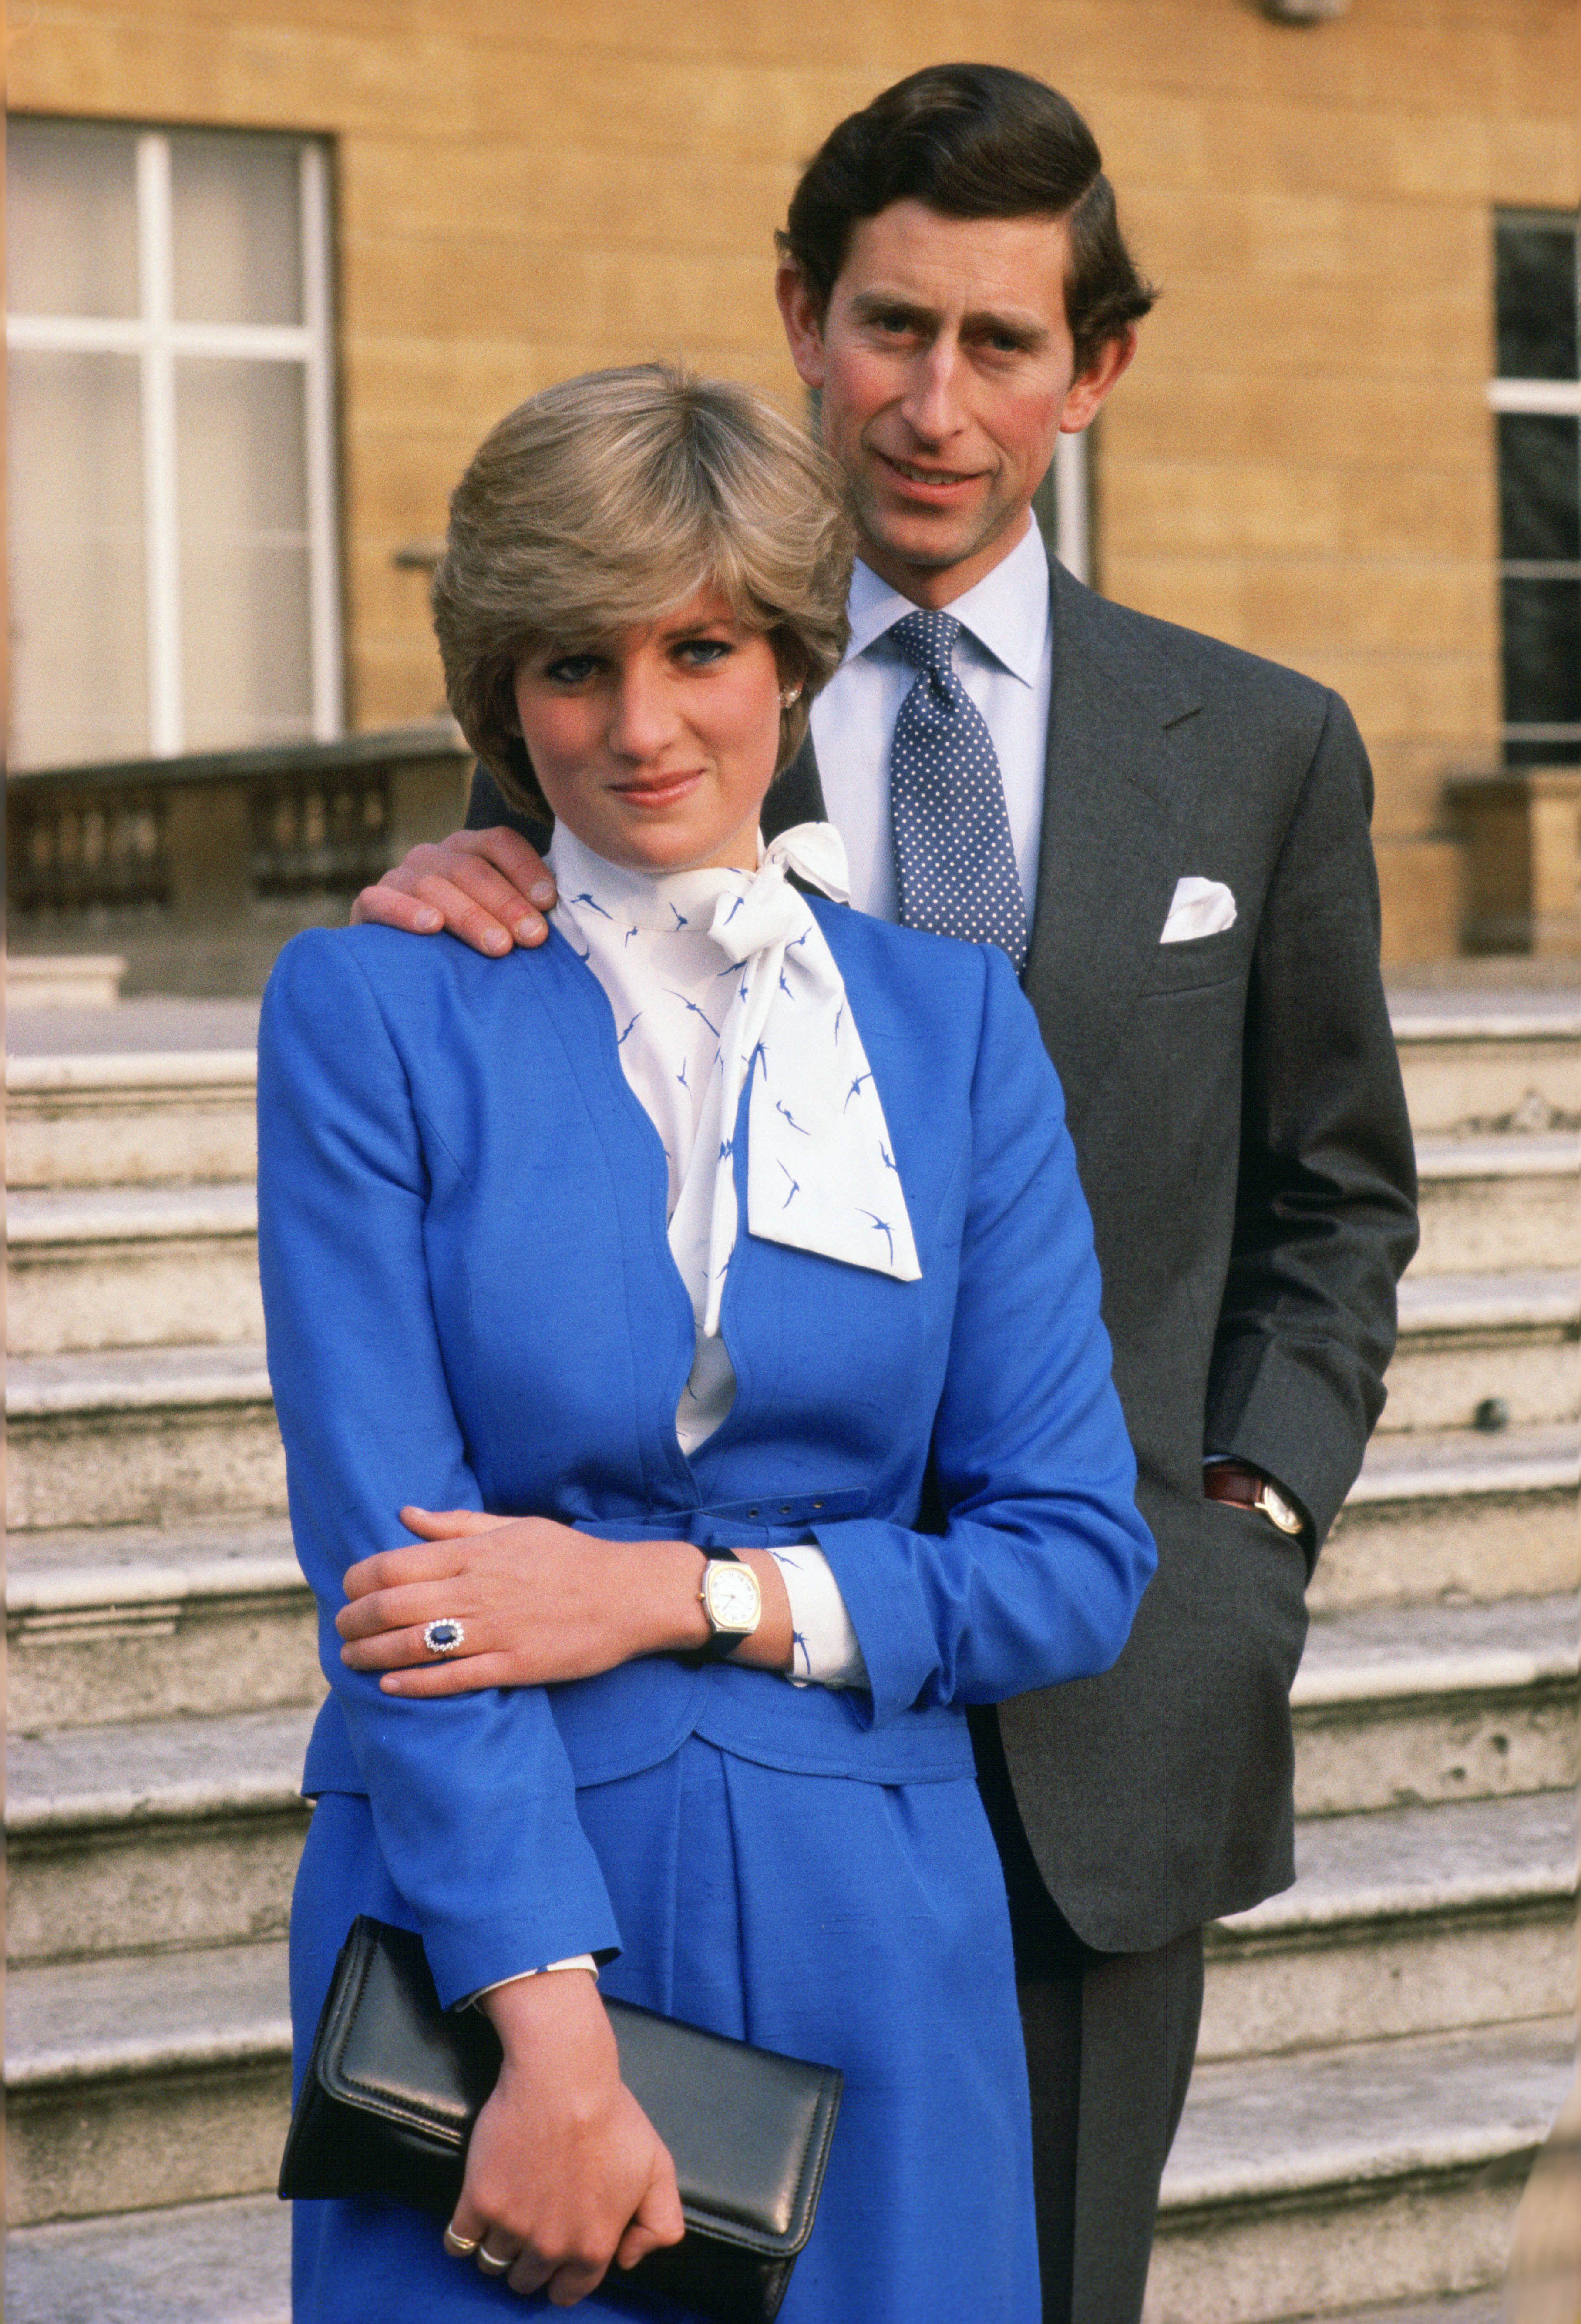 Princess Diana: 'Charles wants me dead' – 5 conspiracies on how she really died